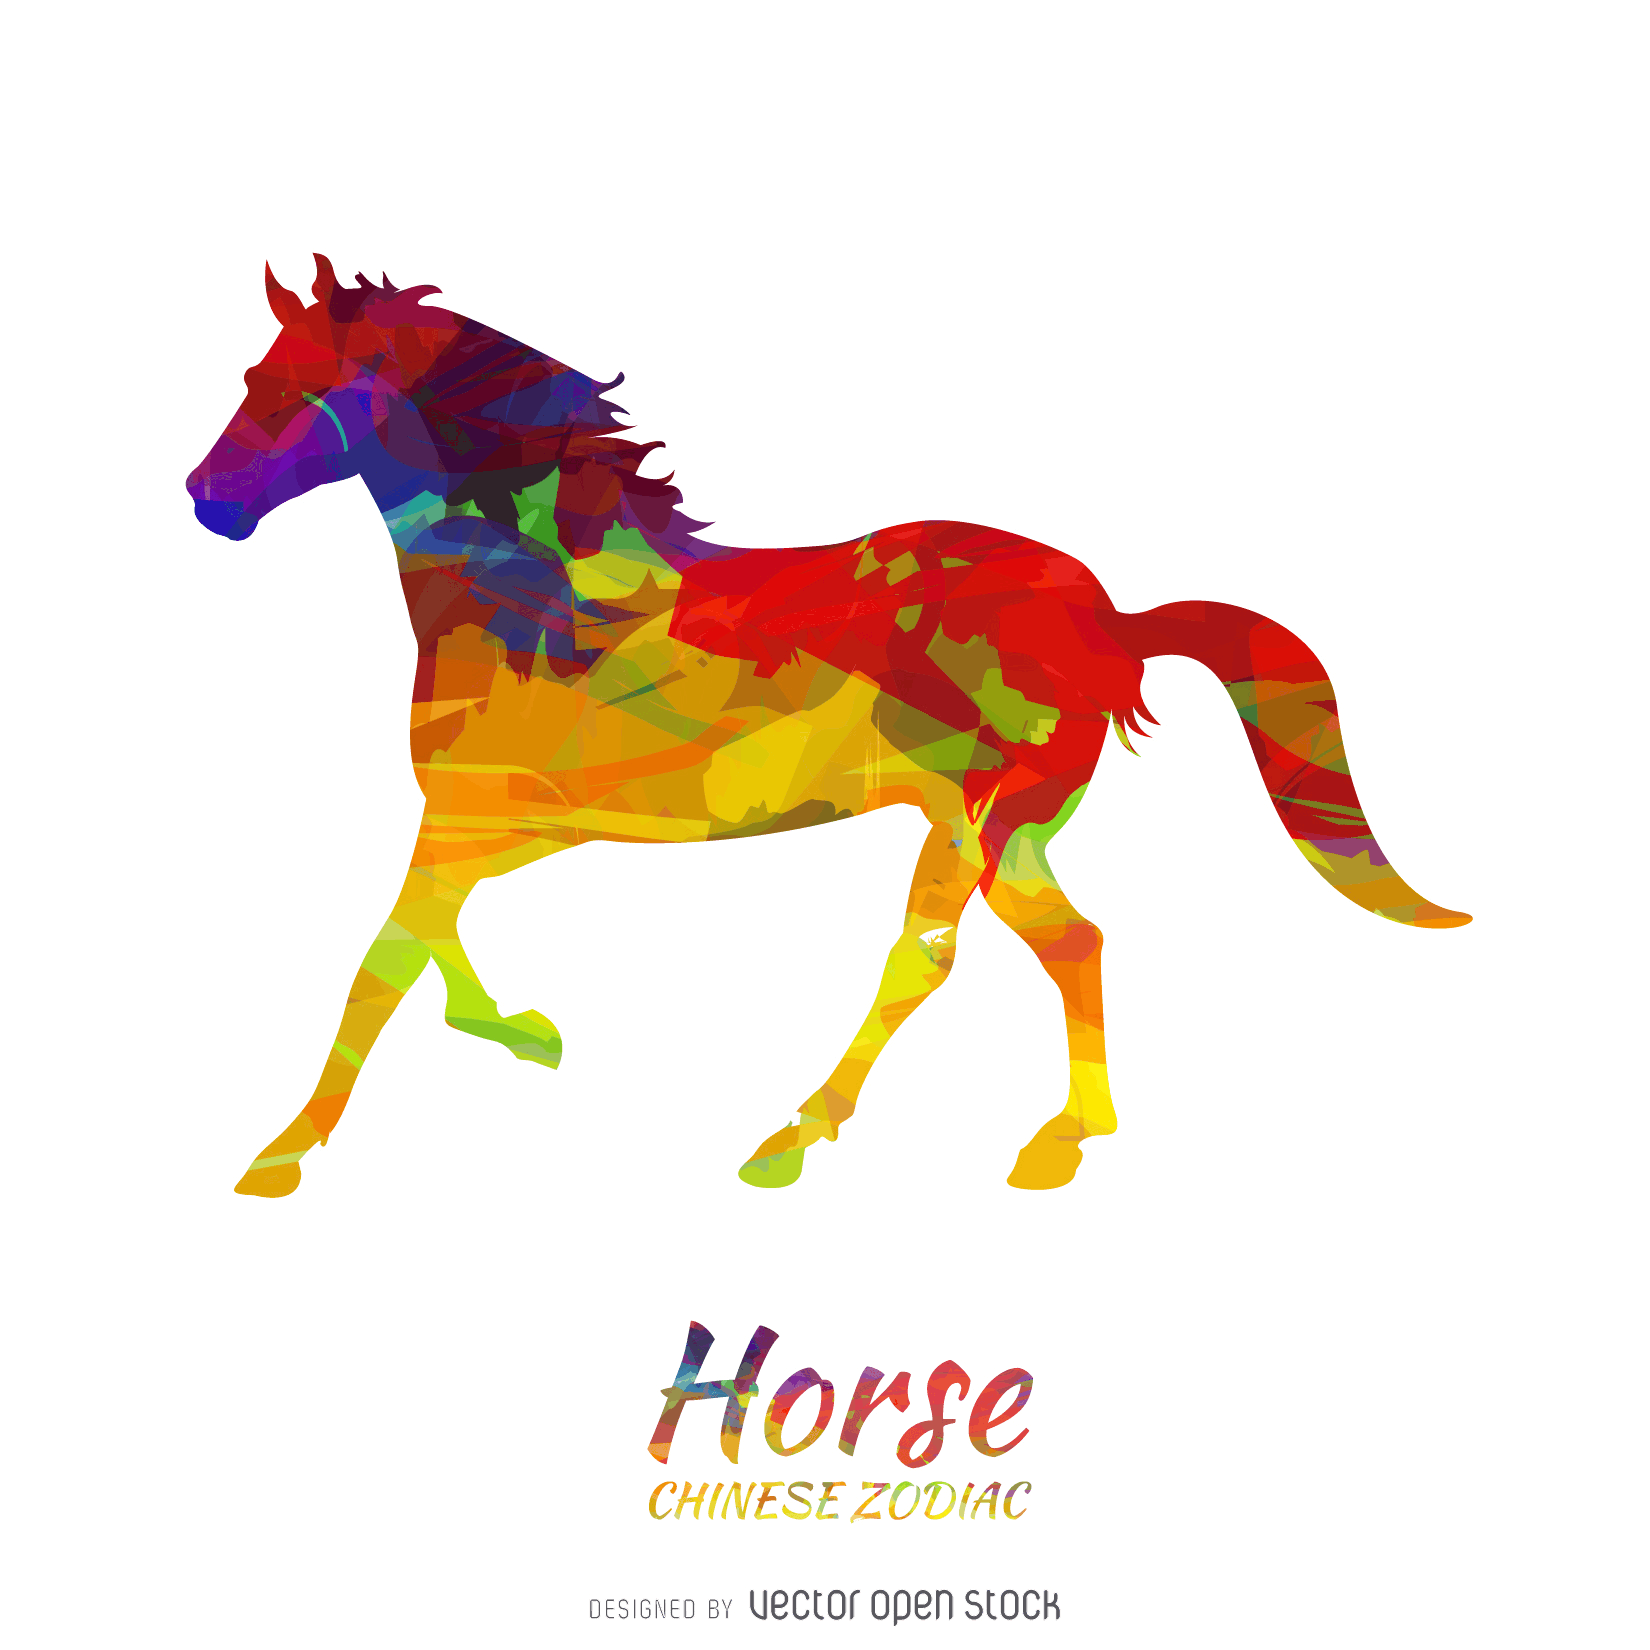 Colorful Chinese Zodiac Design Featuring A Horse Drawing In Multiple